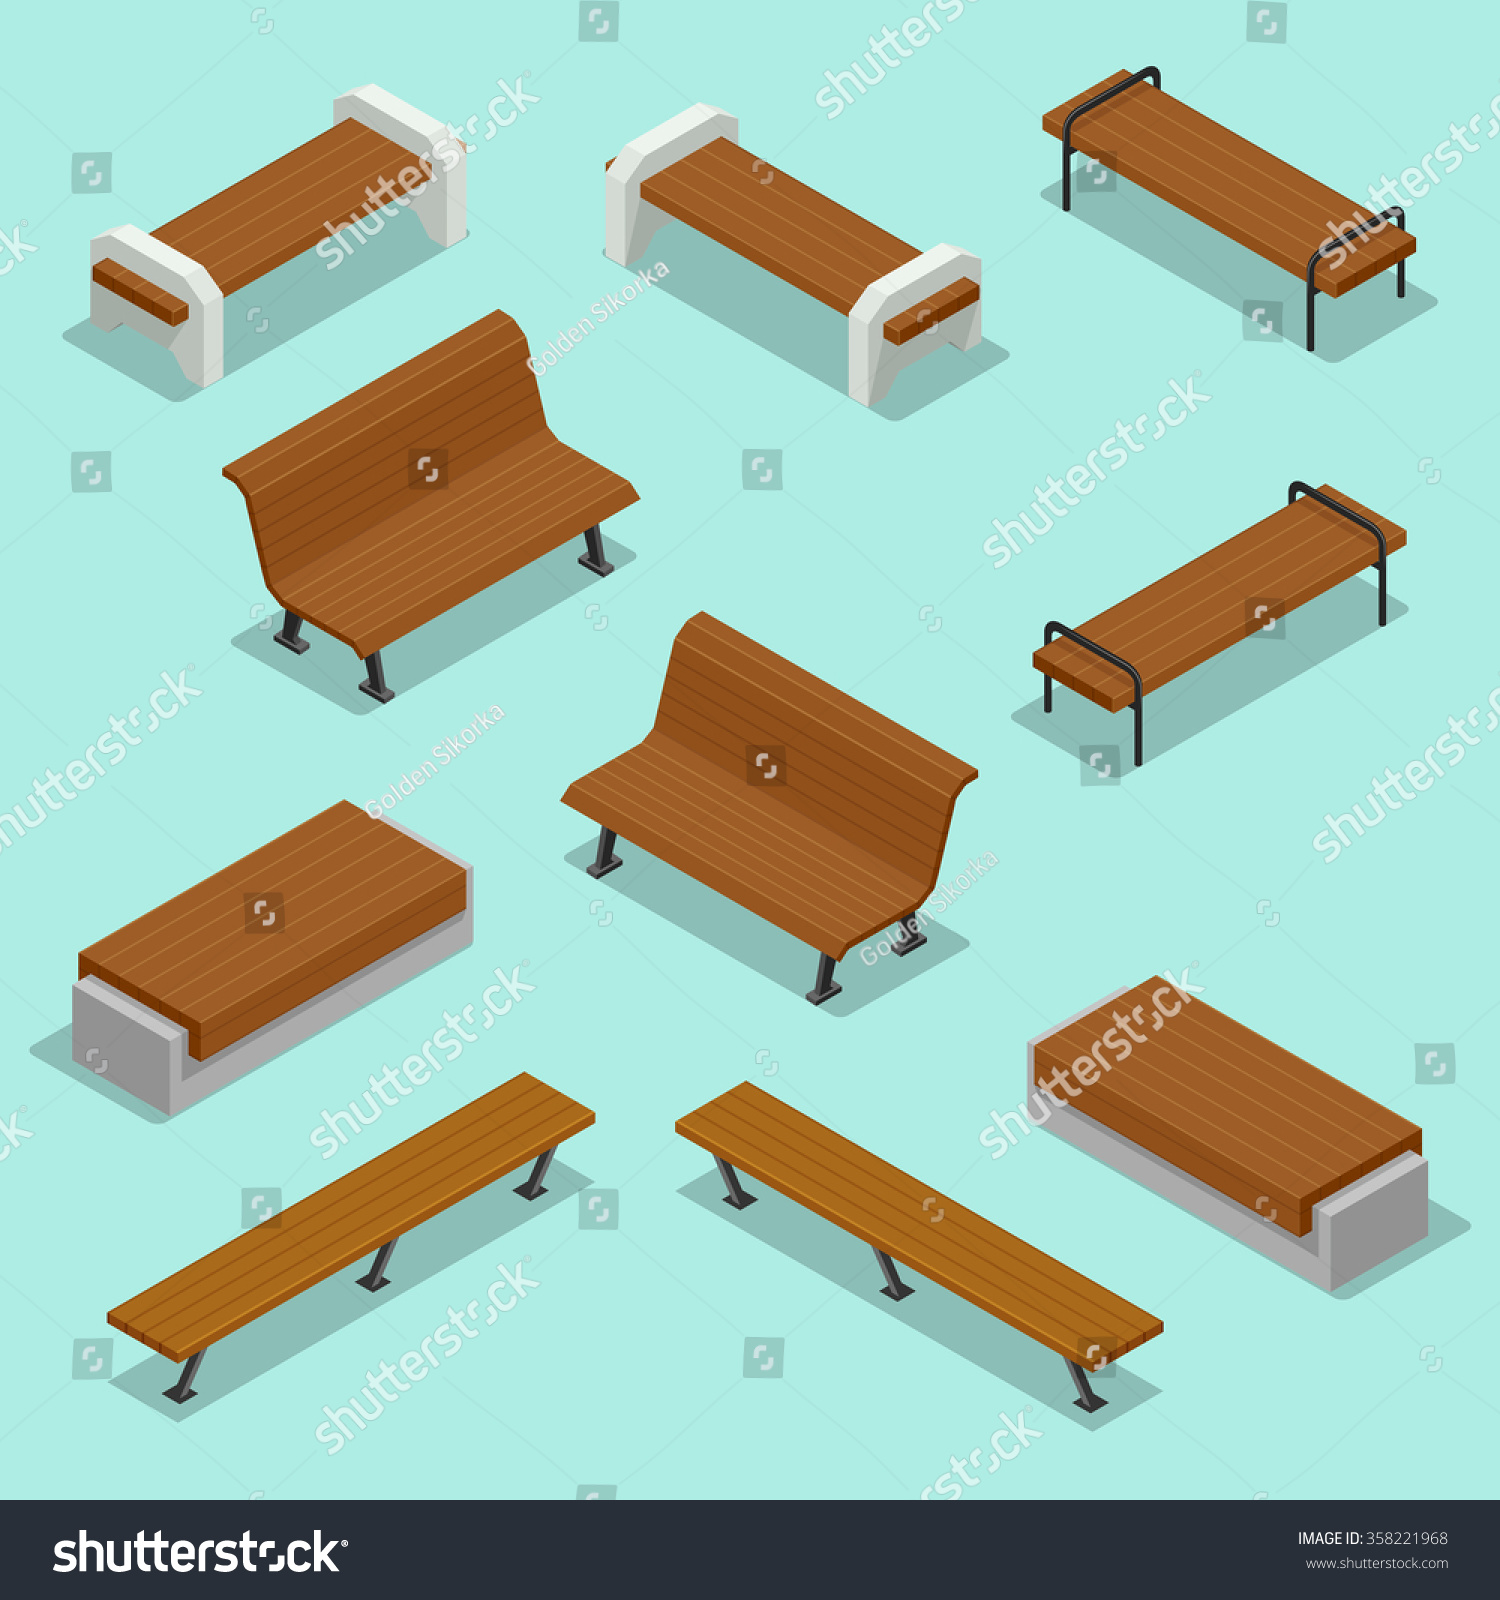 100 Wooden Bench Outdoor Bloomingville Straight  : stock vector outdoor park bench wooden bench isolated on background isometric vector illustration in flat 358221968 from 45.32.79.15 size 1500 x 1600 jpeg 443kB